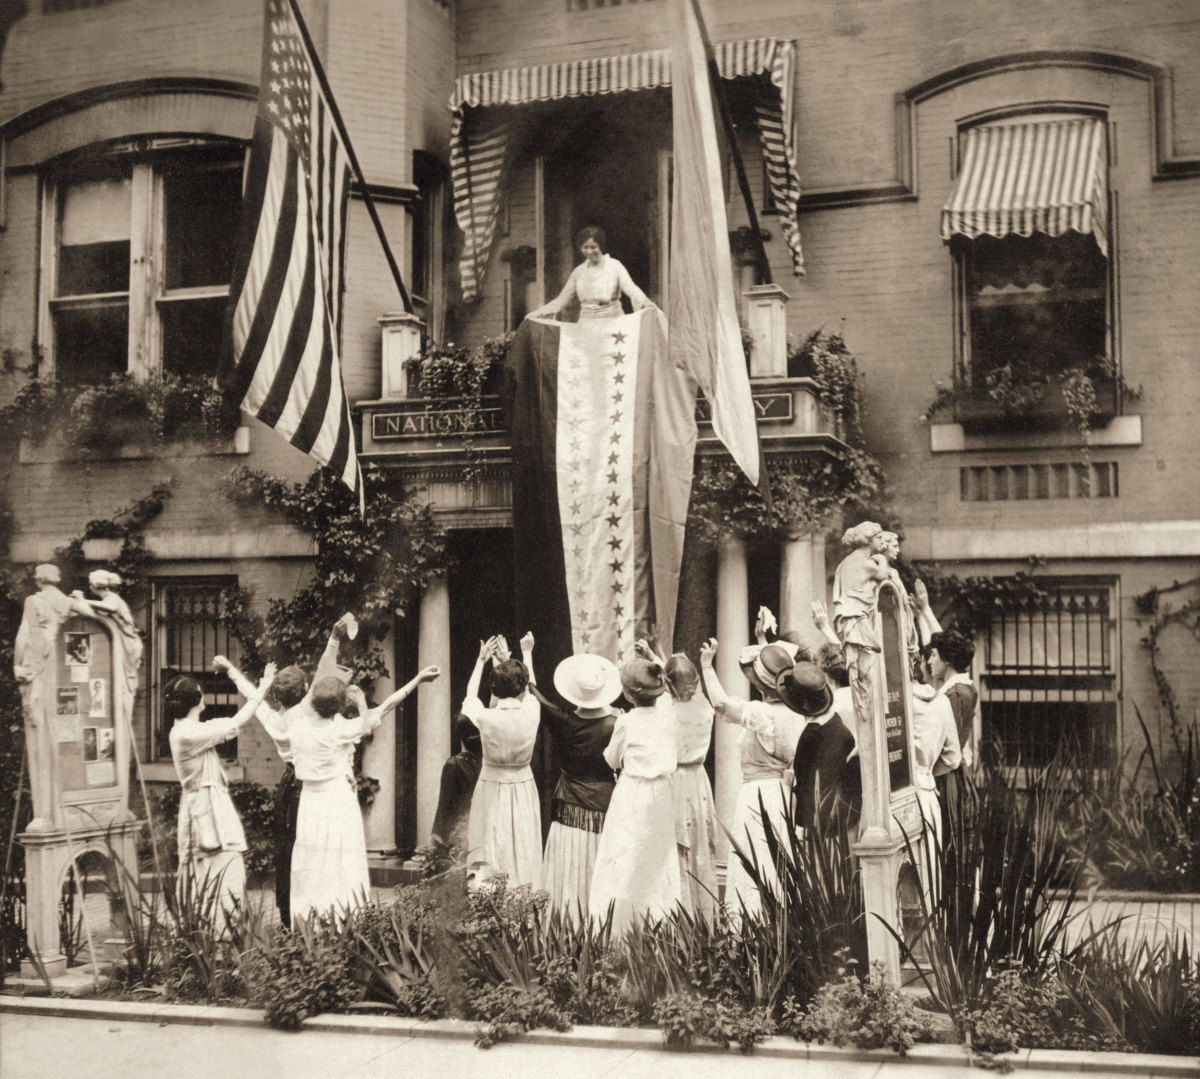 American suffragist Alice Paul stands on a balcony at the National Women's Party headquarters and unfurls a banner in celebration of the state of Tennessee's ratification of the 19th Amendment, which guaranteed women the right to vote.